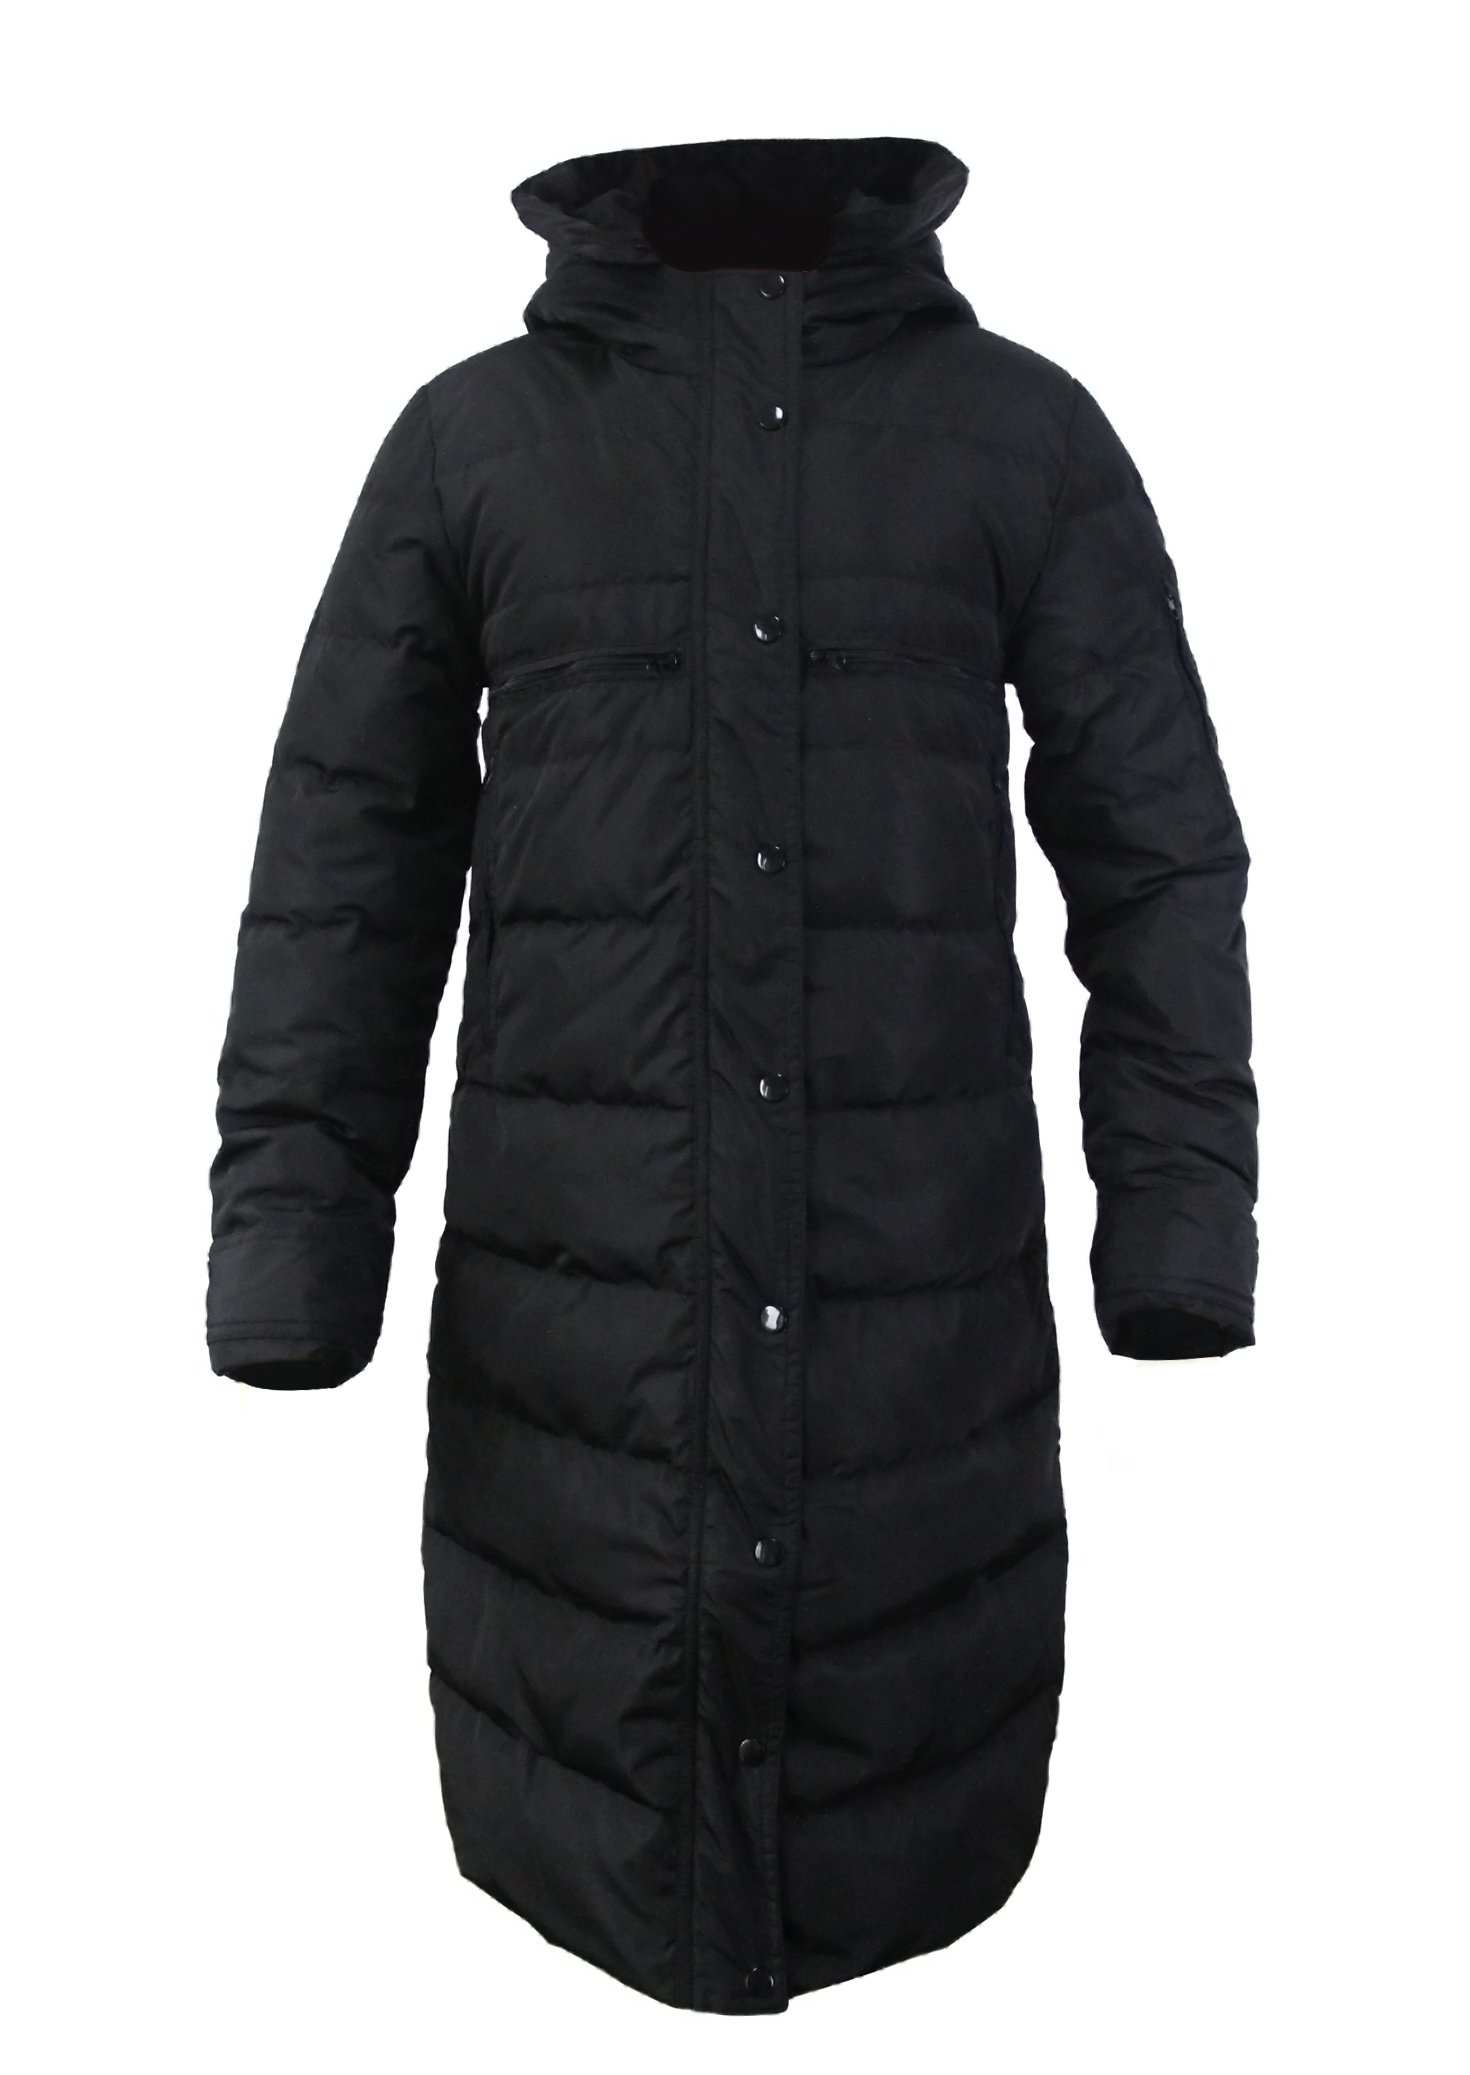 CHERRY CHICK Stock Clearance! Women's Slim Fit Long Down Jacket Coat with Hood (X-Large, Black) by CHERRY CHICK (Image #1)